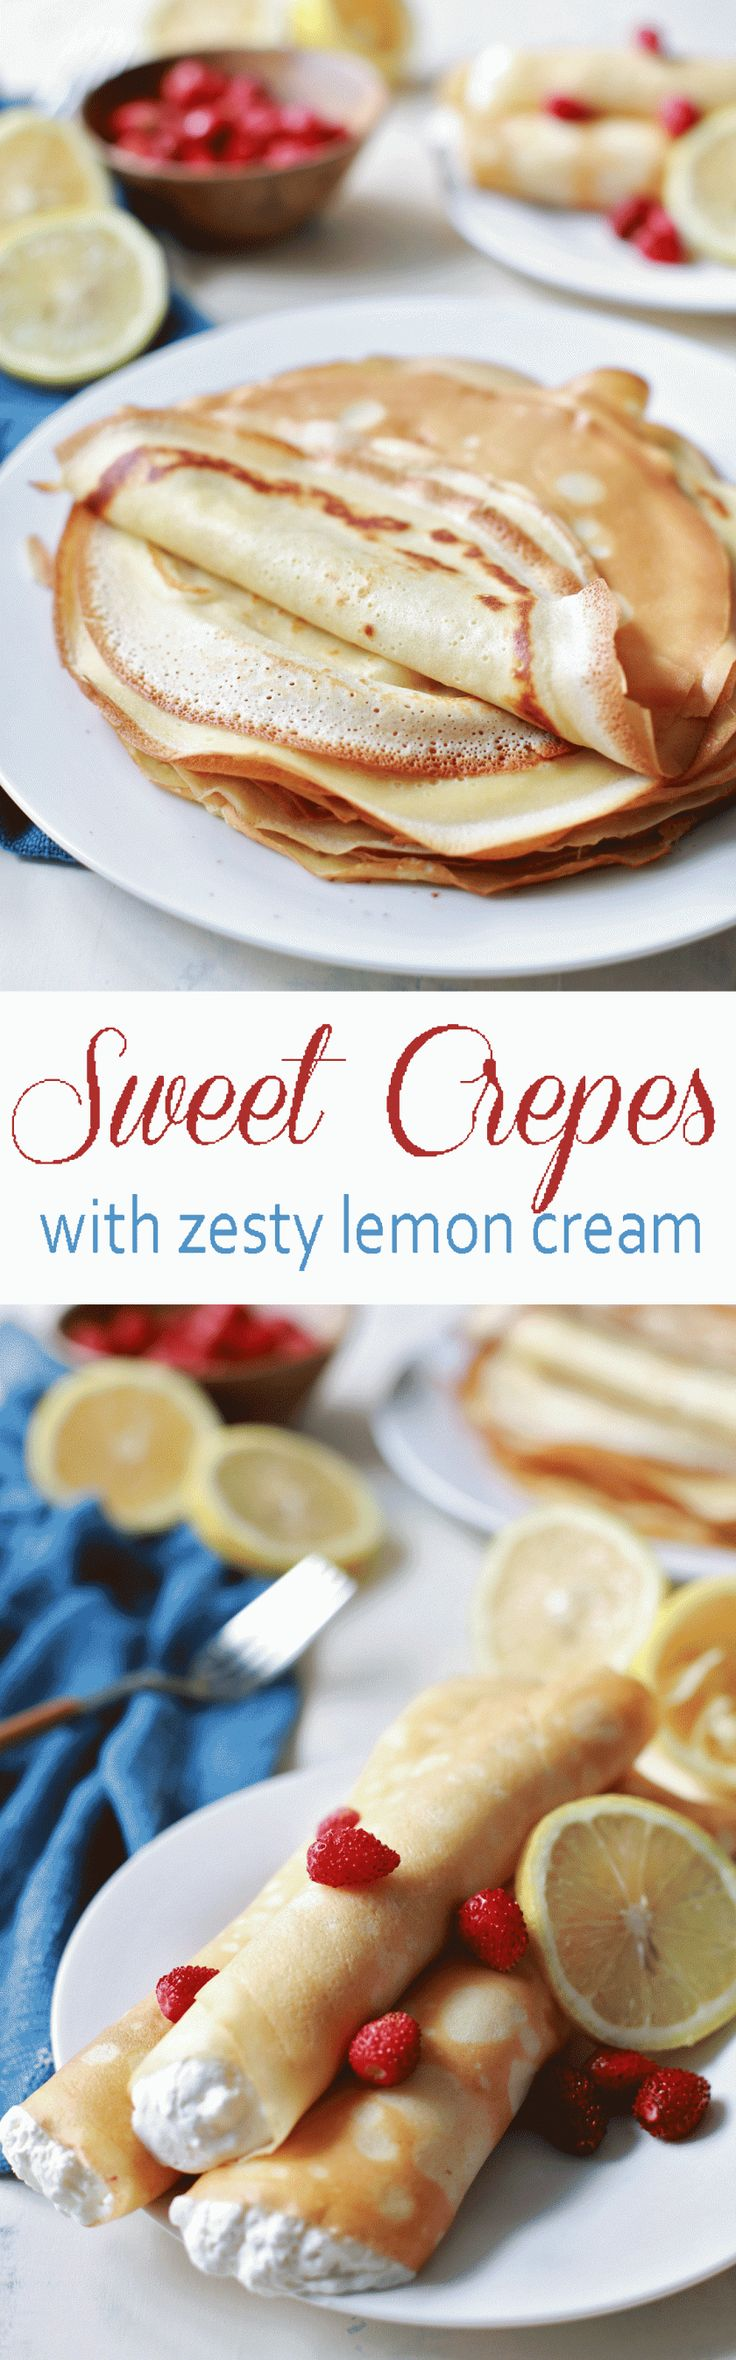 Most incredible dessert crepes in the history of EVER! and that Lemon Cream is to die for!!!